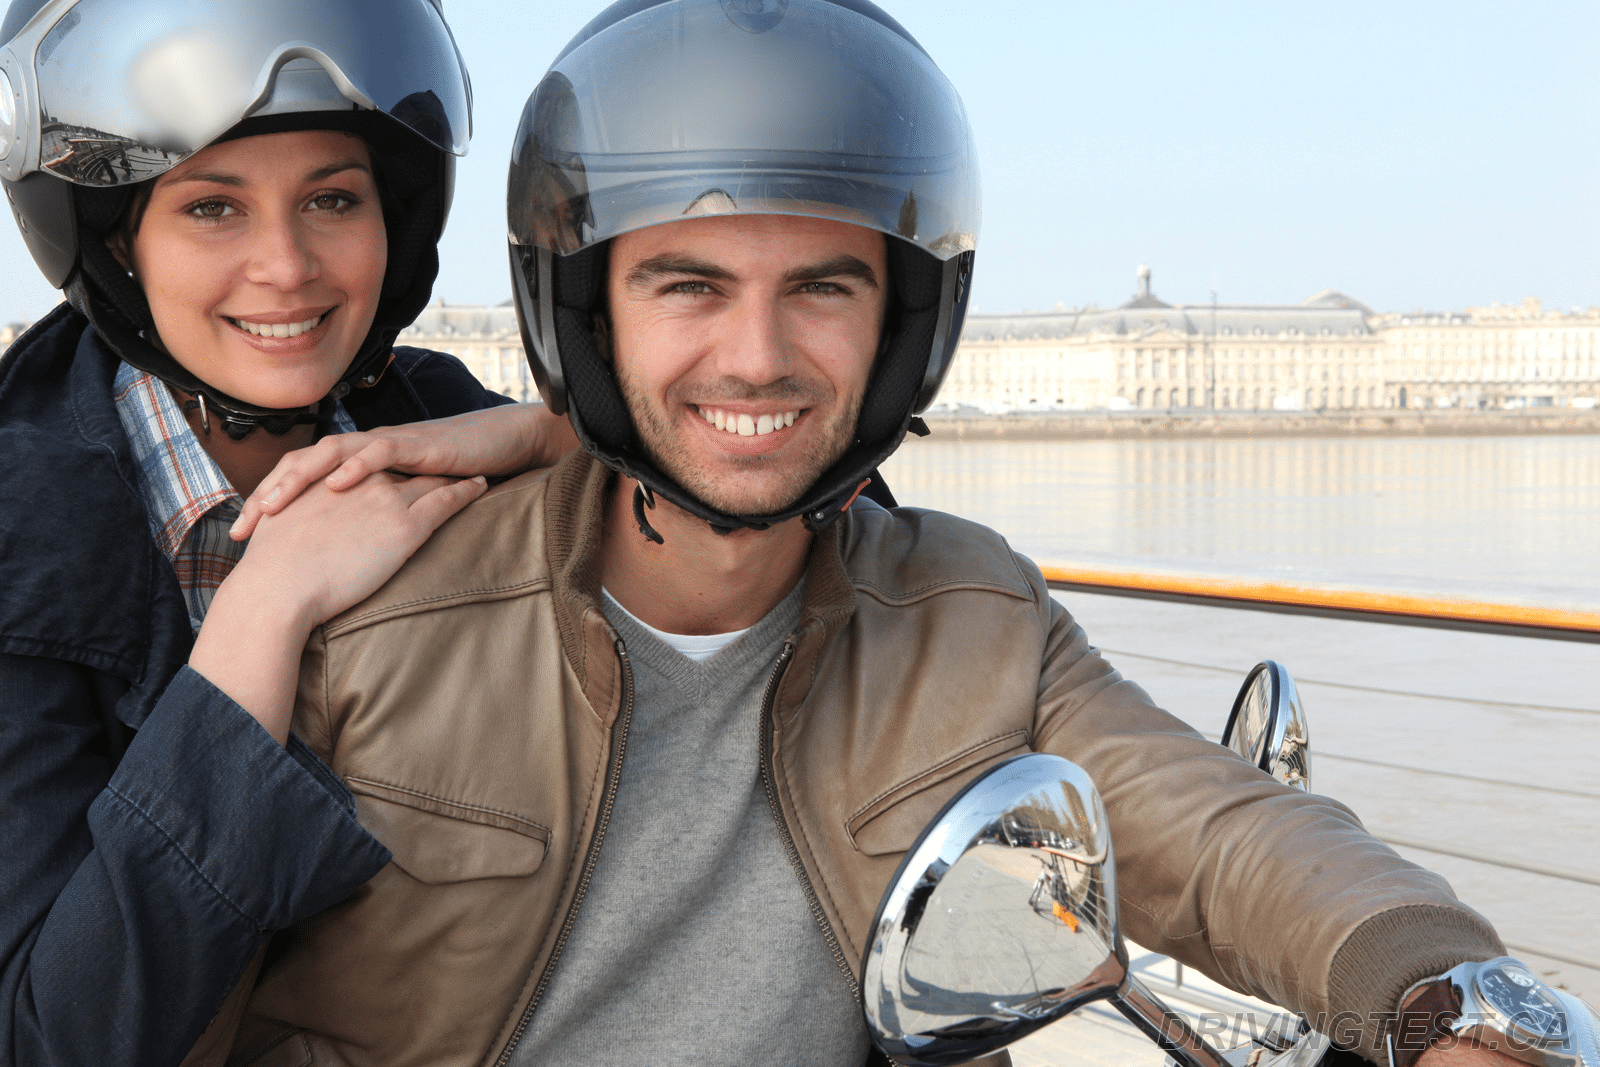 Motorcycle Helmet Buying Guide